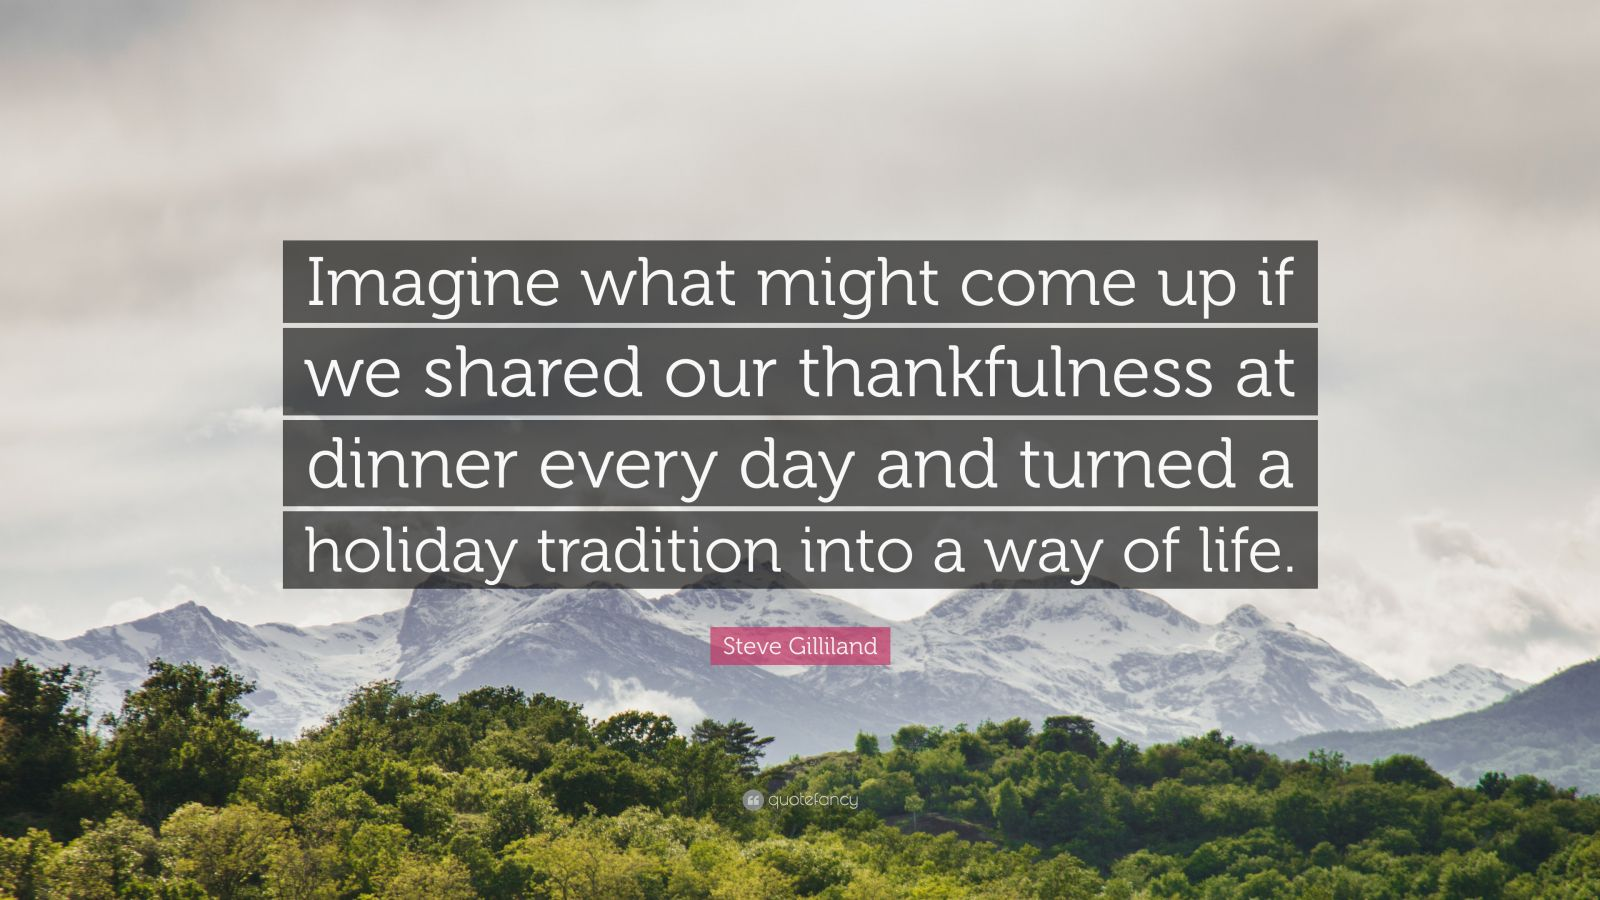 """Steve Gilliland Quote: """"Imagine what might come up if we shared our thankfulness at dinner every day and turned a holiday tradition into a way of life."""""""